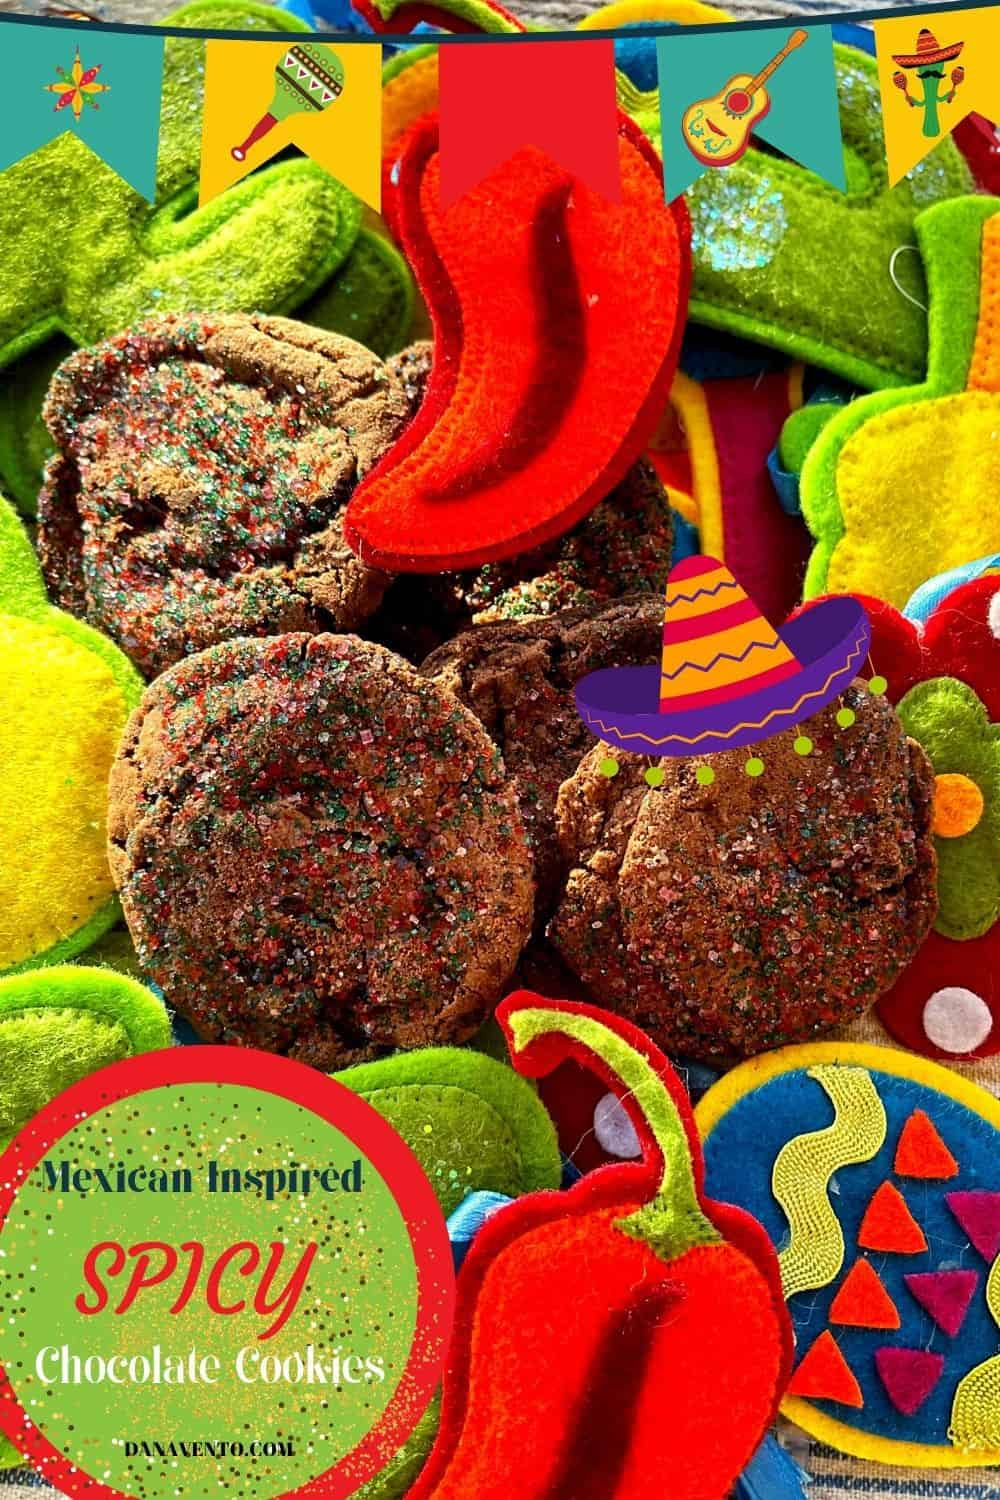 Mexican Inspired Spicy Chocolate Cookies in party paper